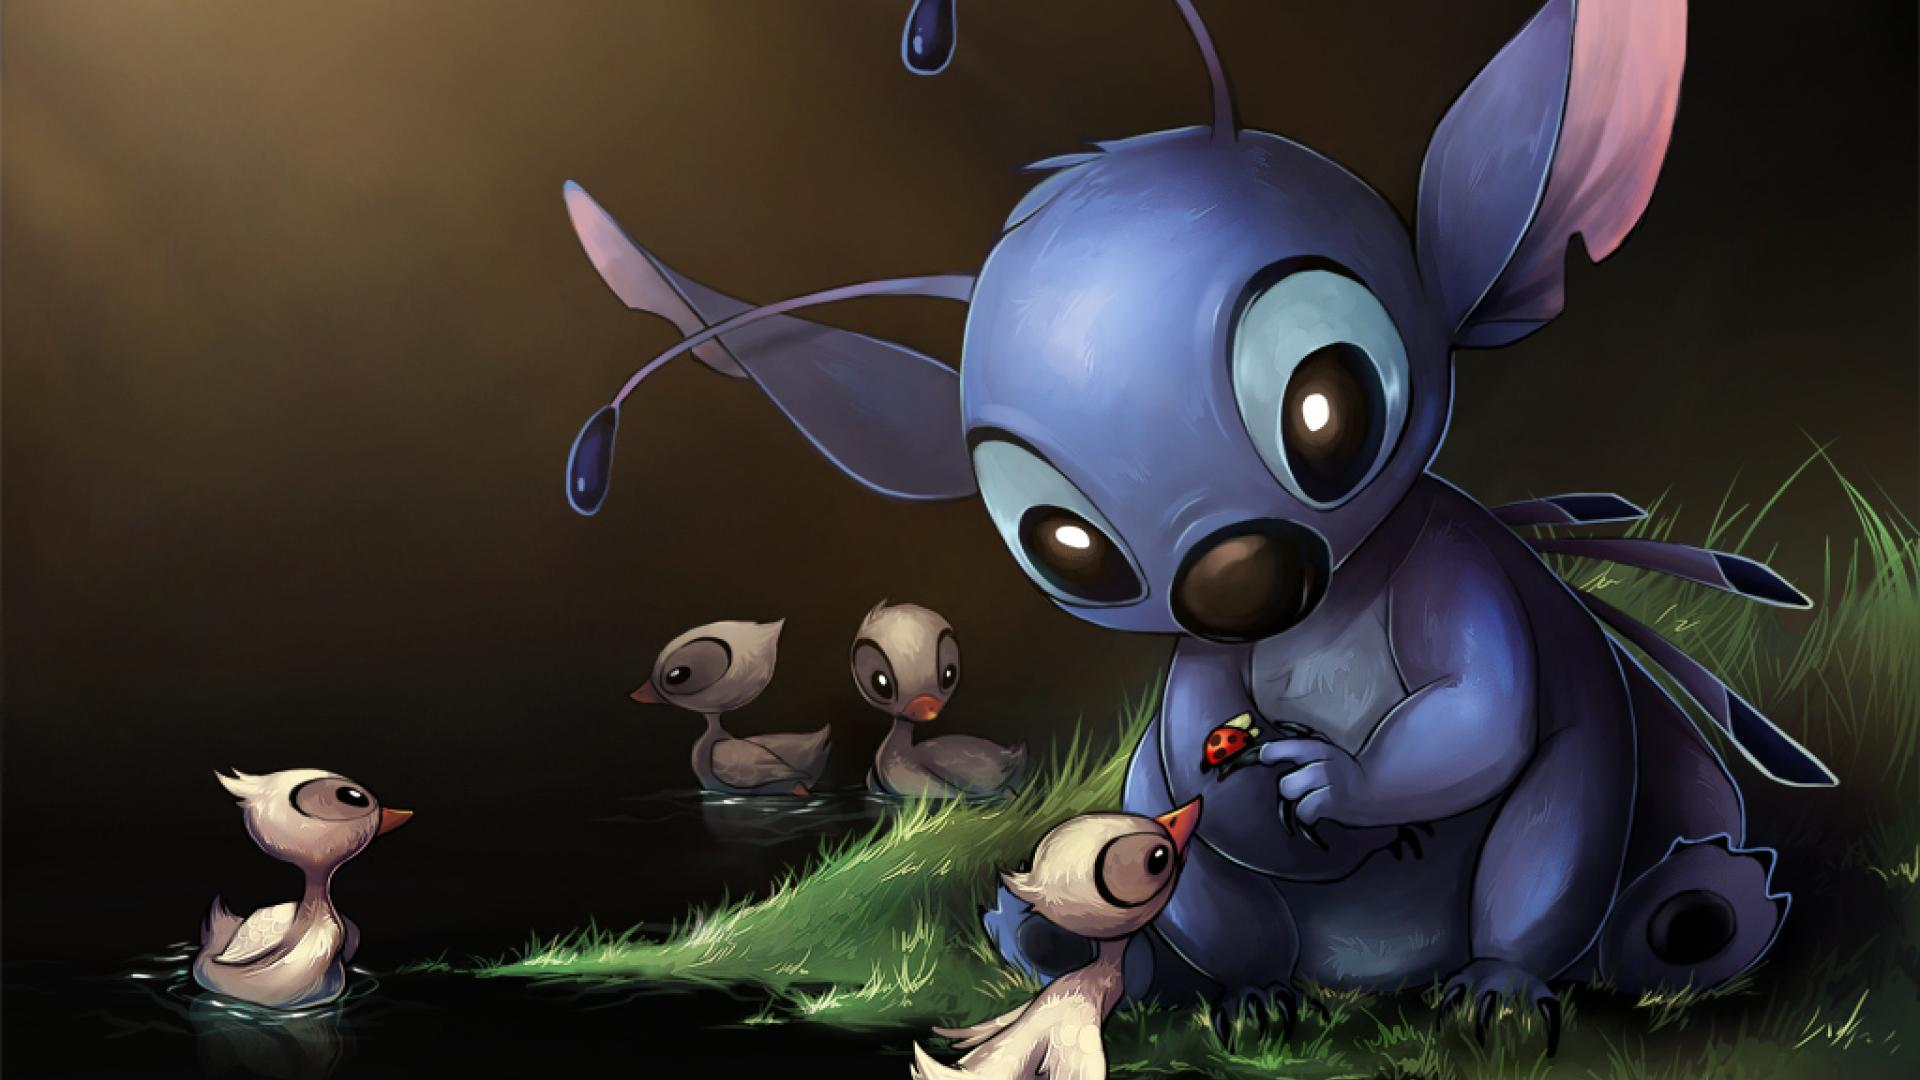 Stitch Hd HD Wallpaper & Backgrounds Download